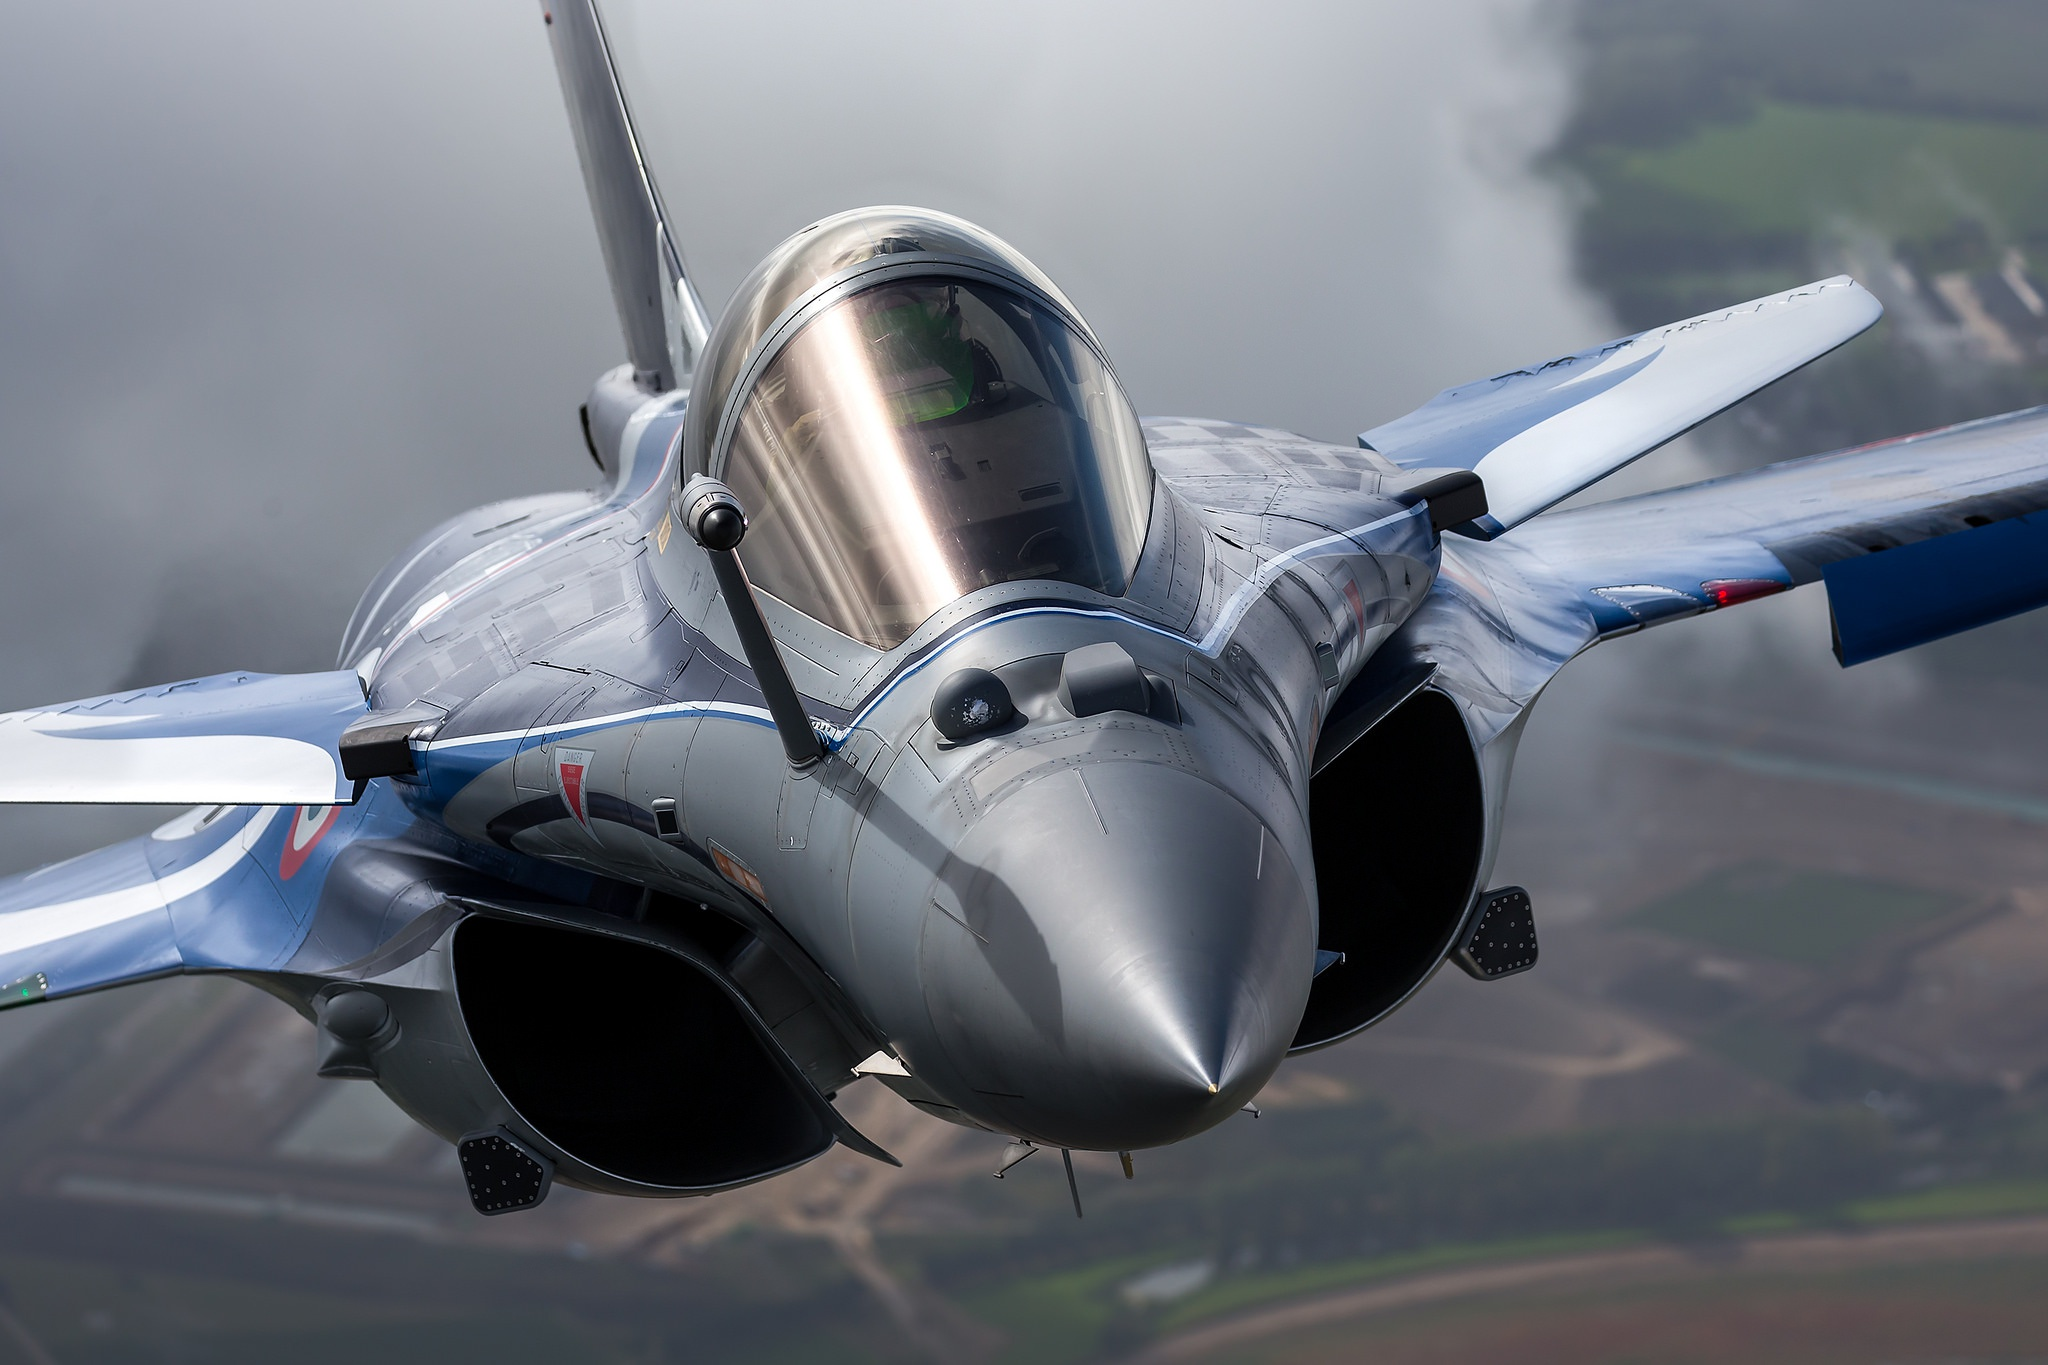 Photo rafale hd